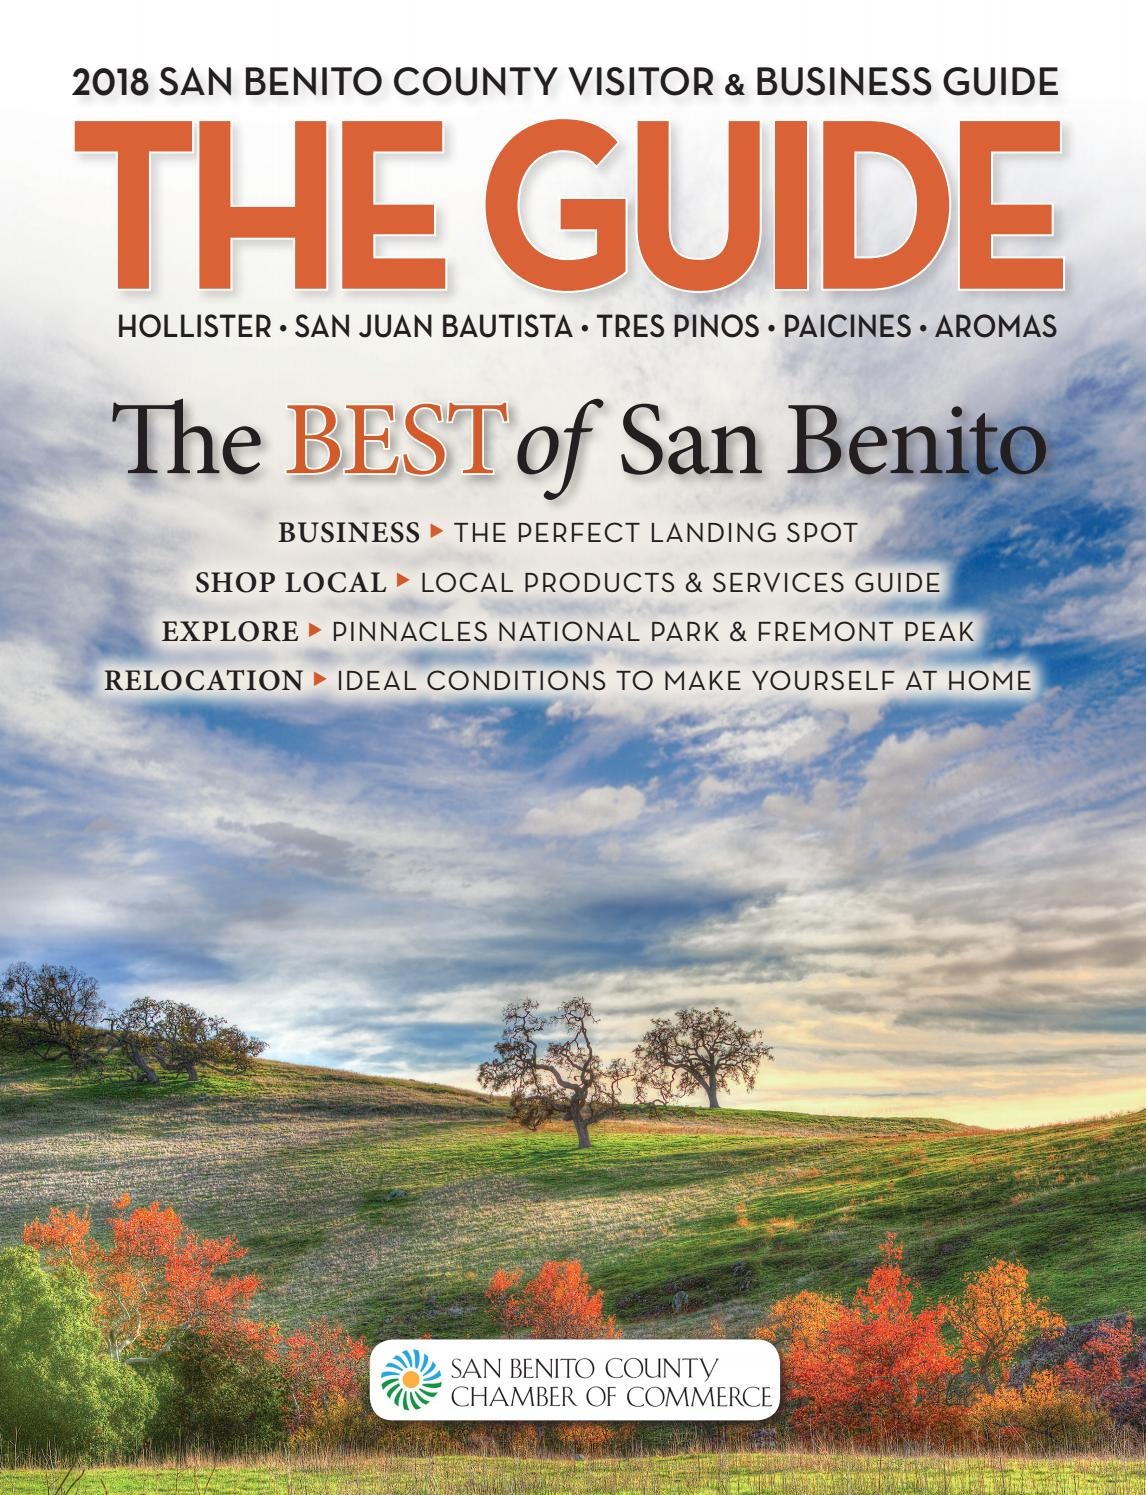 San Benito County Chamber Of Commerce 2018 Visitor Guide